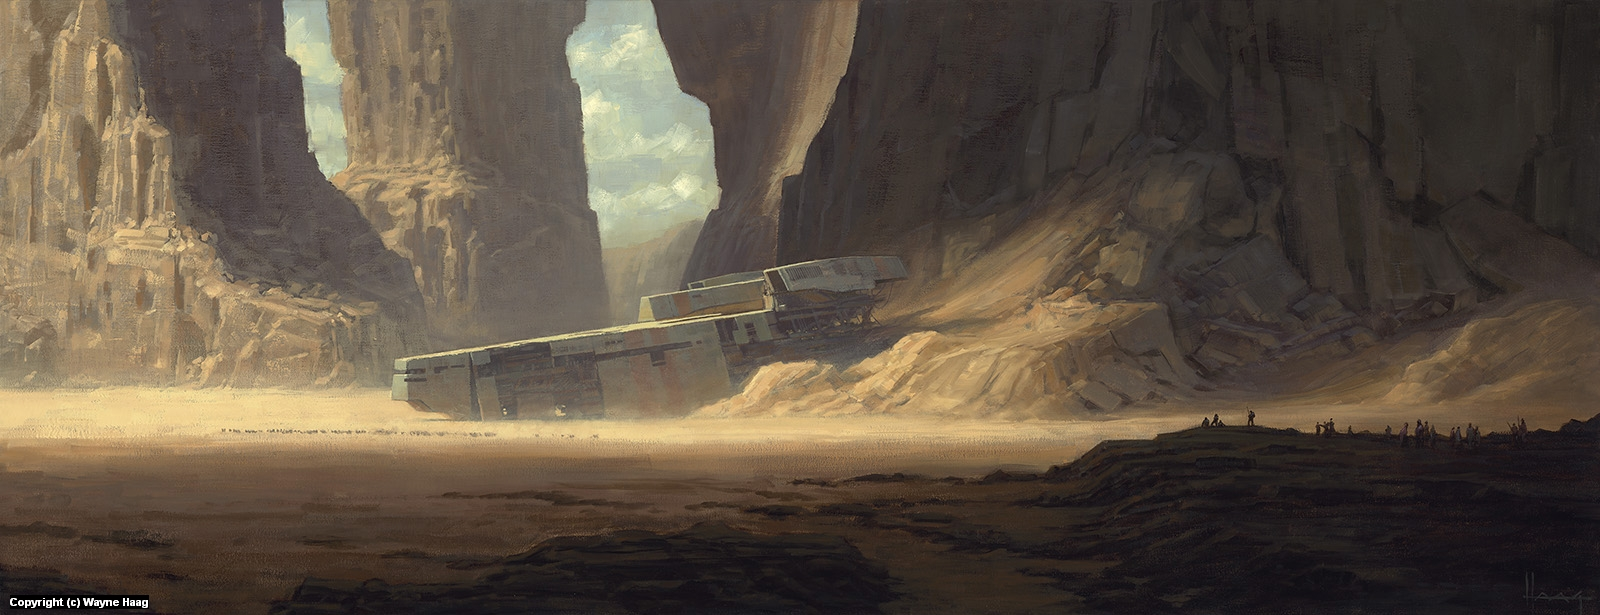 Desert Wreck Artwork by Wayne Haag